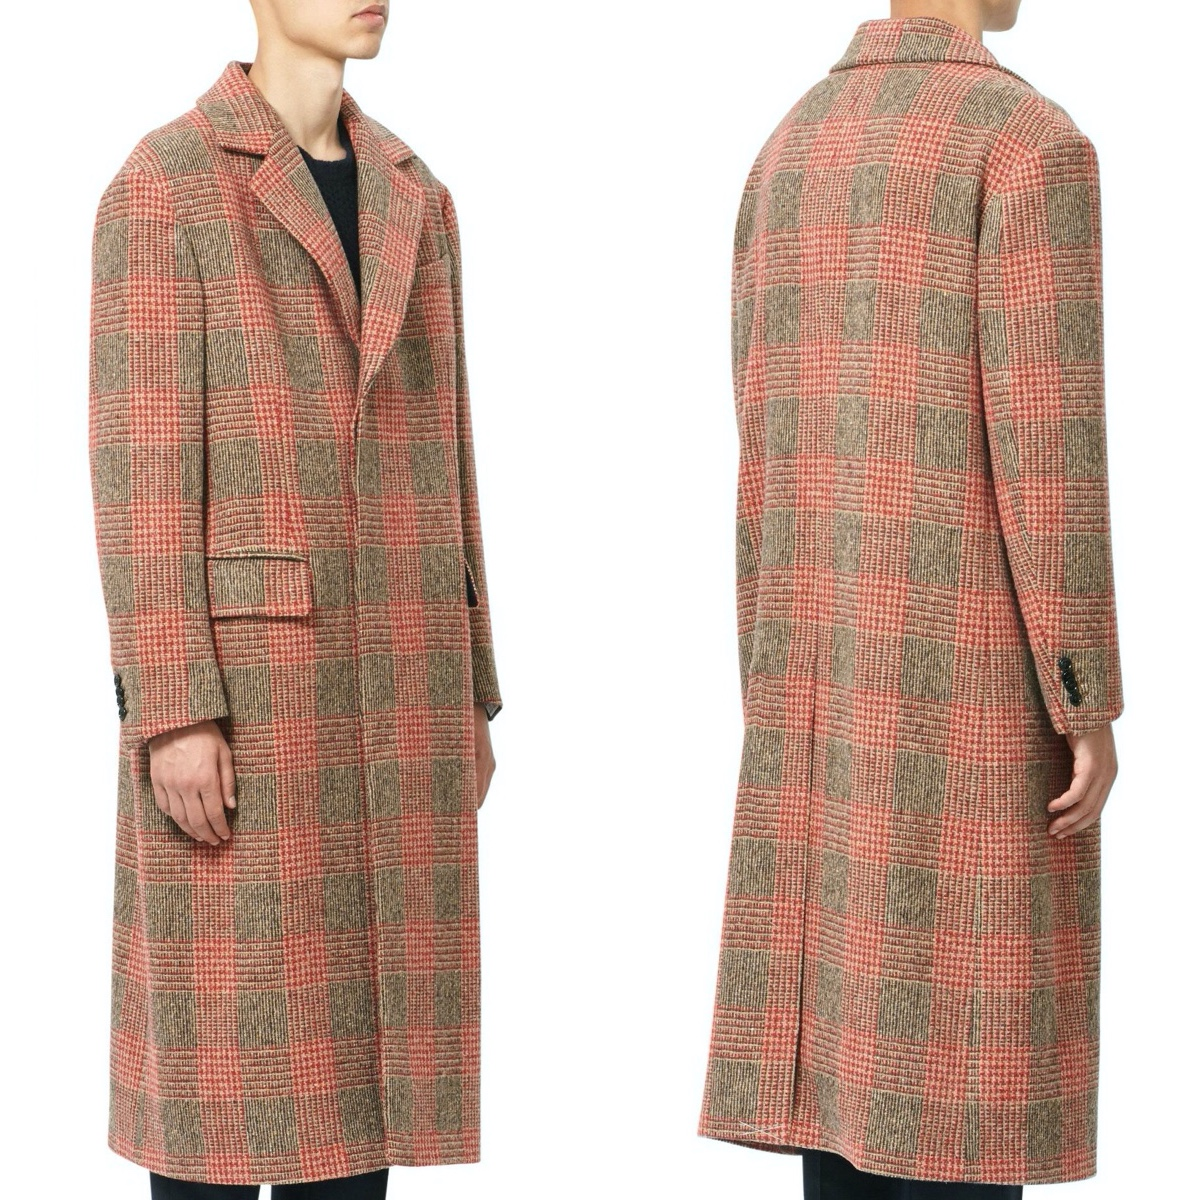 MP Massimo Piombo Red PrinceofWales Check Wool Coat fit1.jpg